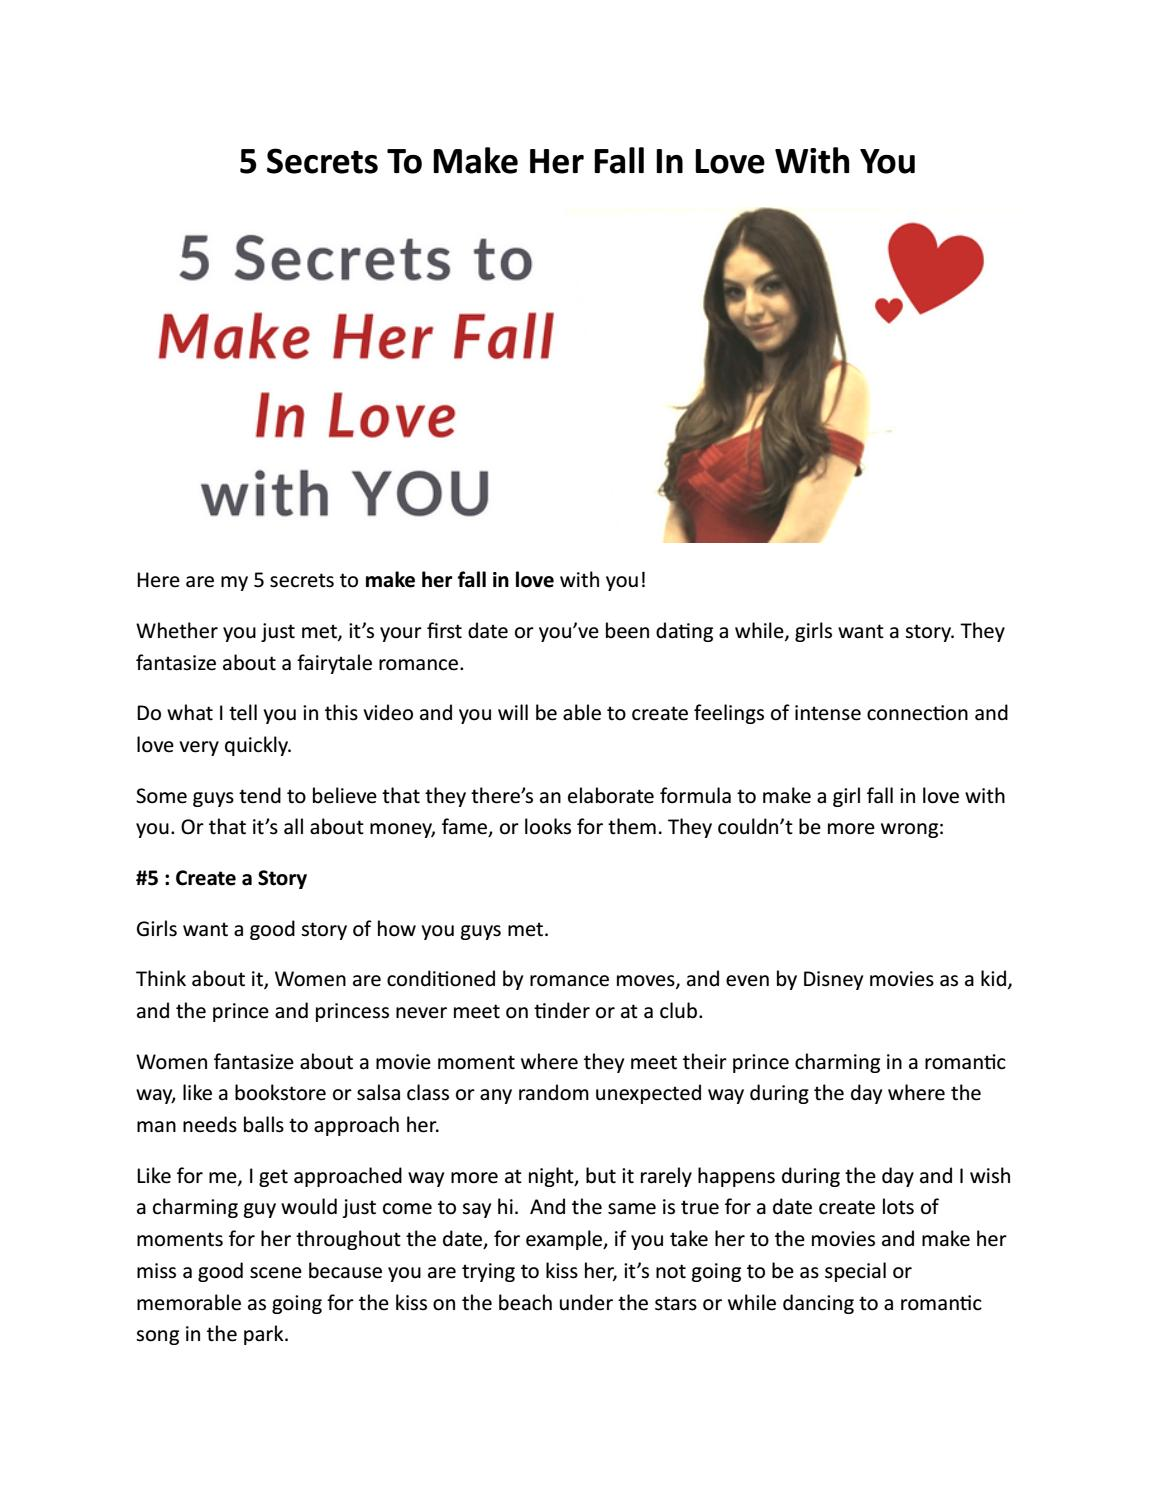 5 Secrets To Make Her Fall In Love With You by The Attractive Man